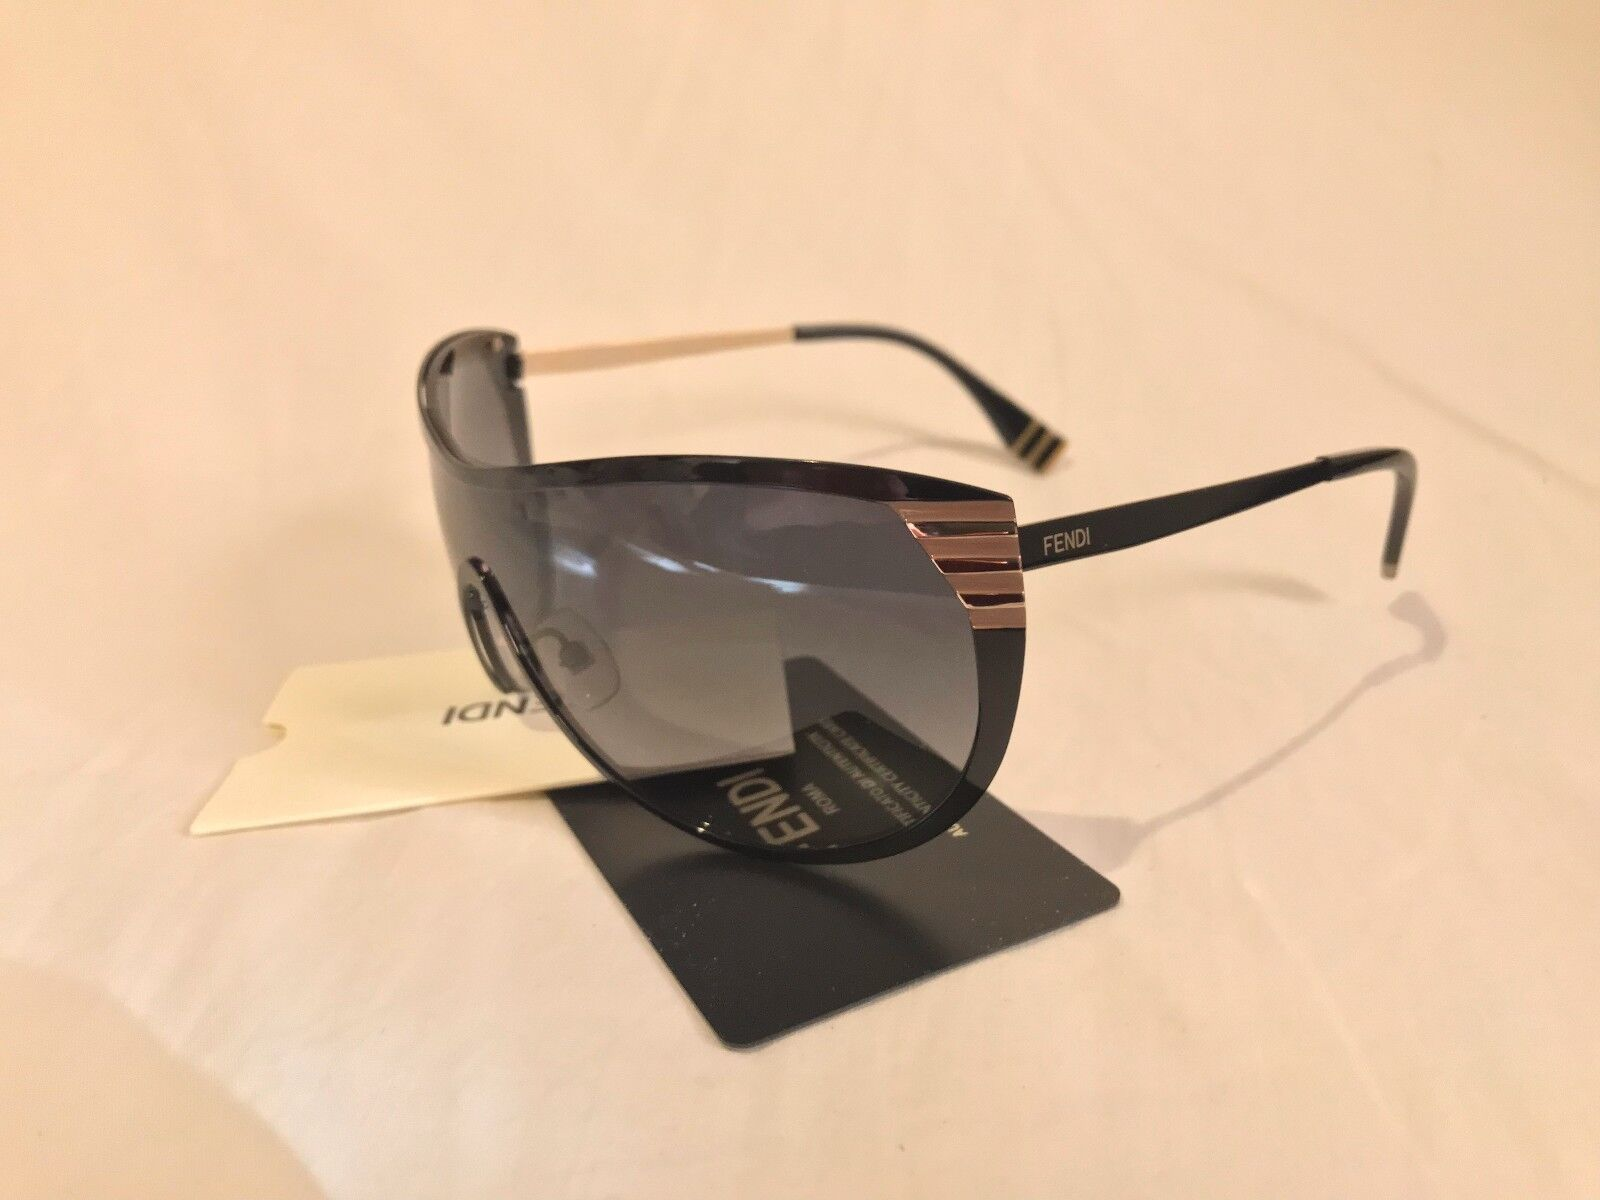 (NEW) Fendi FF 0057/S MXKHD Shiny Black Sunglasses W/ CARD (PRICED TO SELL!)